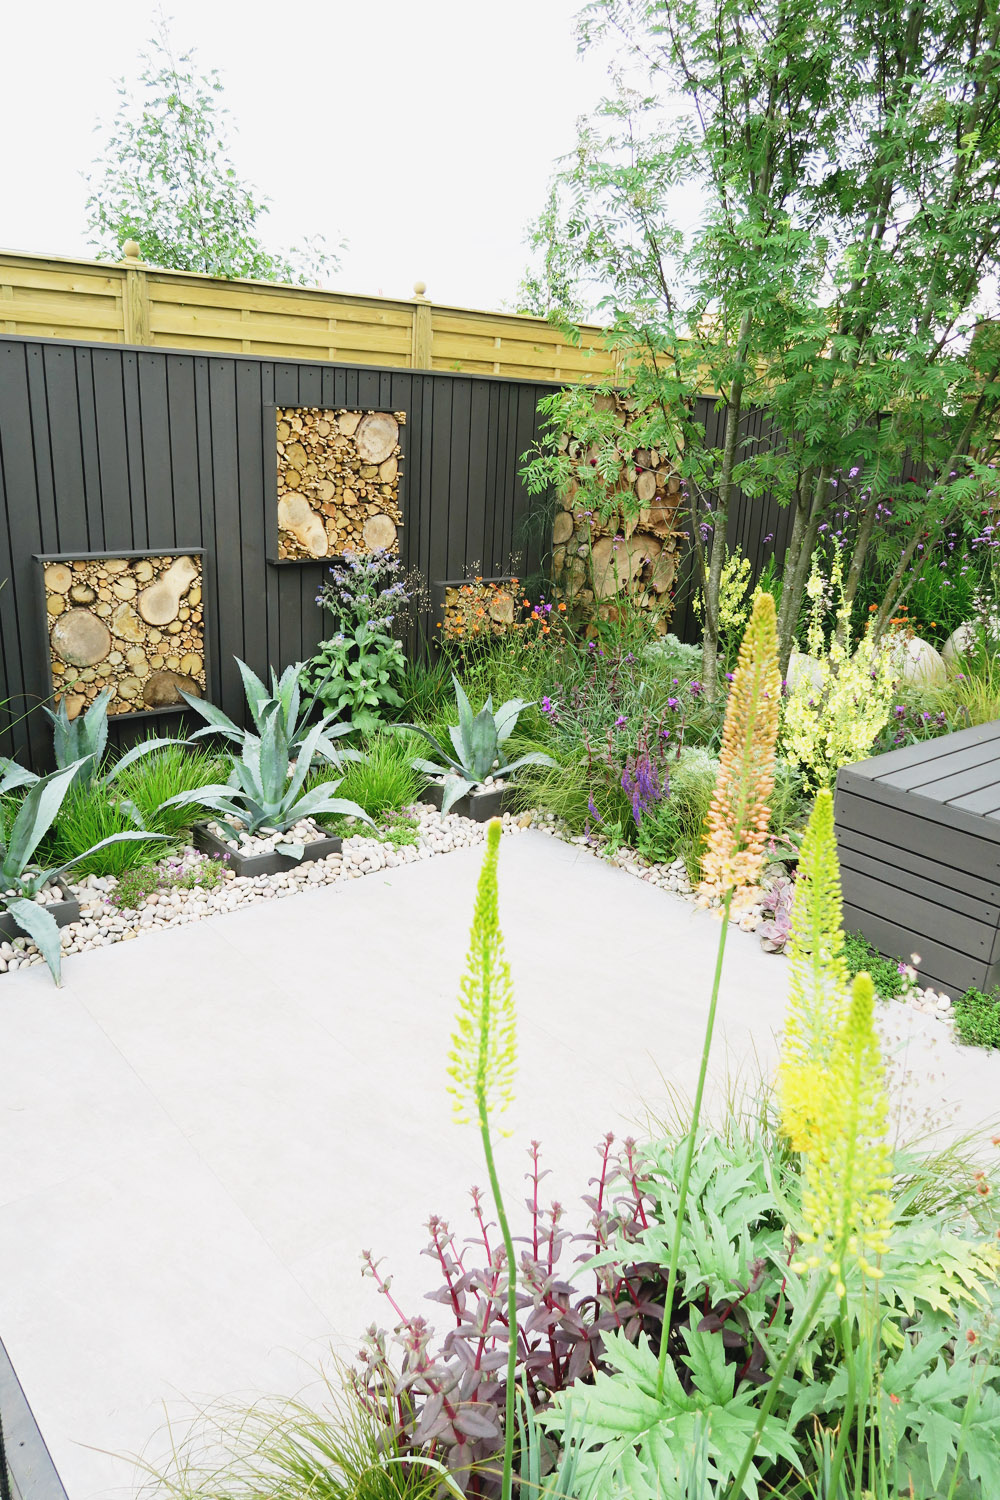 Gardeners World Live 2016 Show Gardens - Eat and Shelter